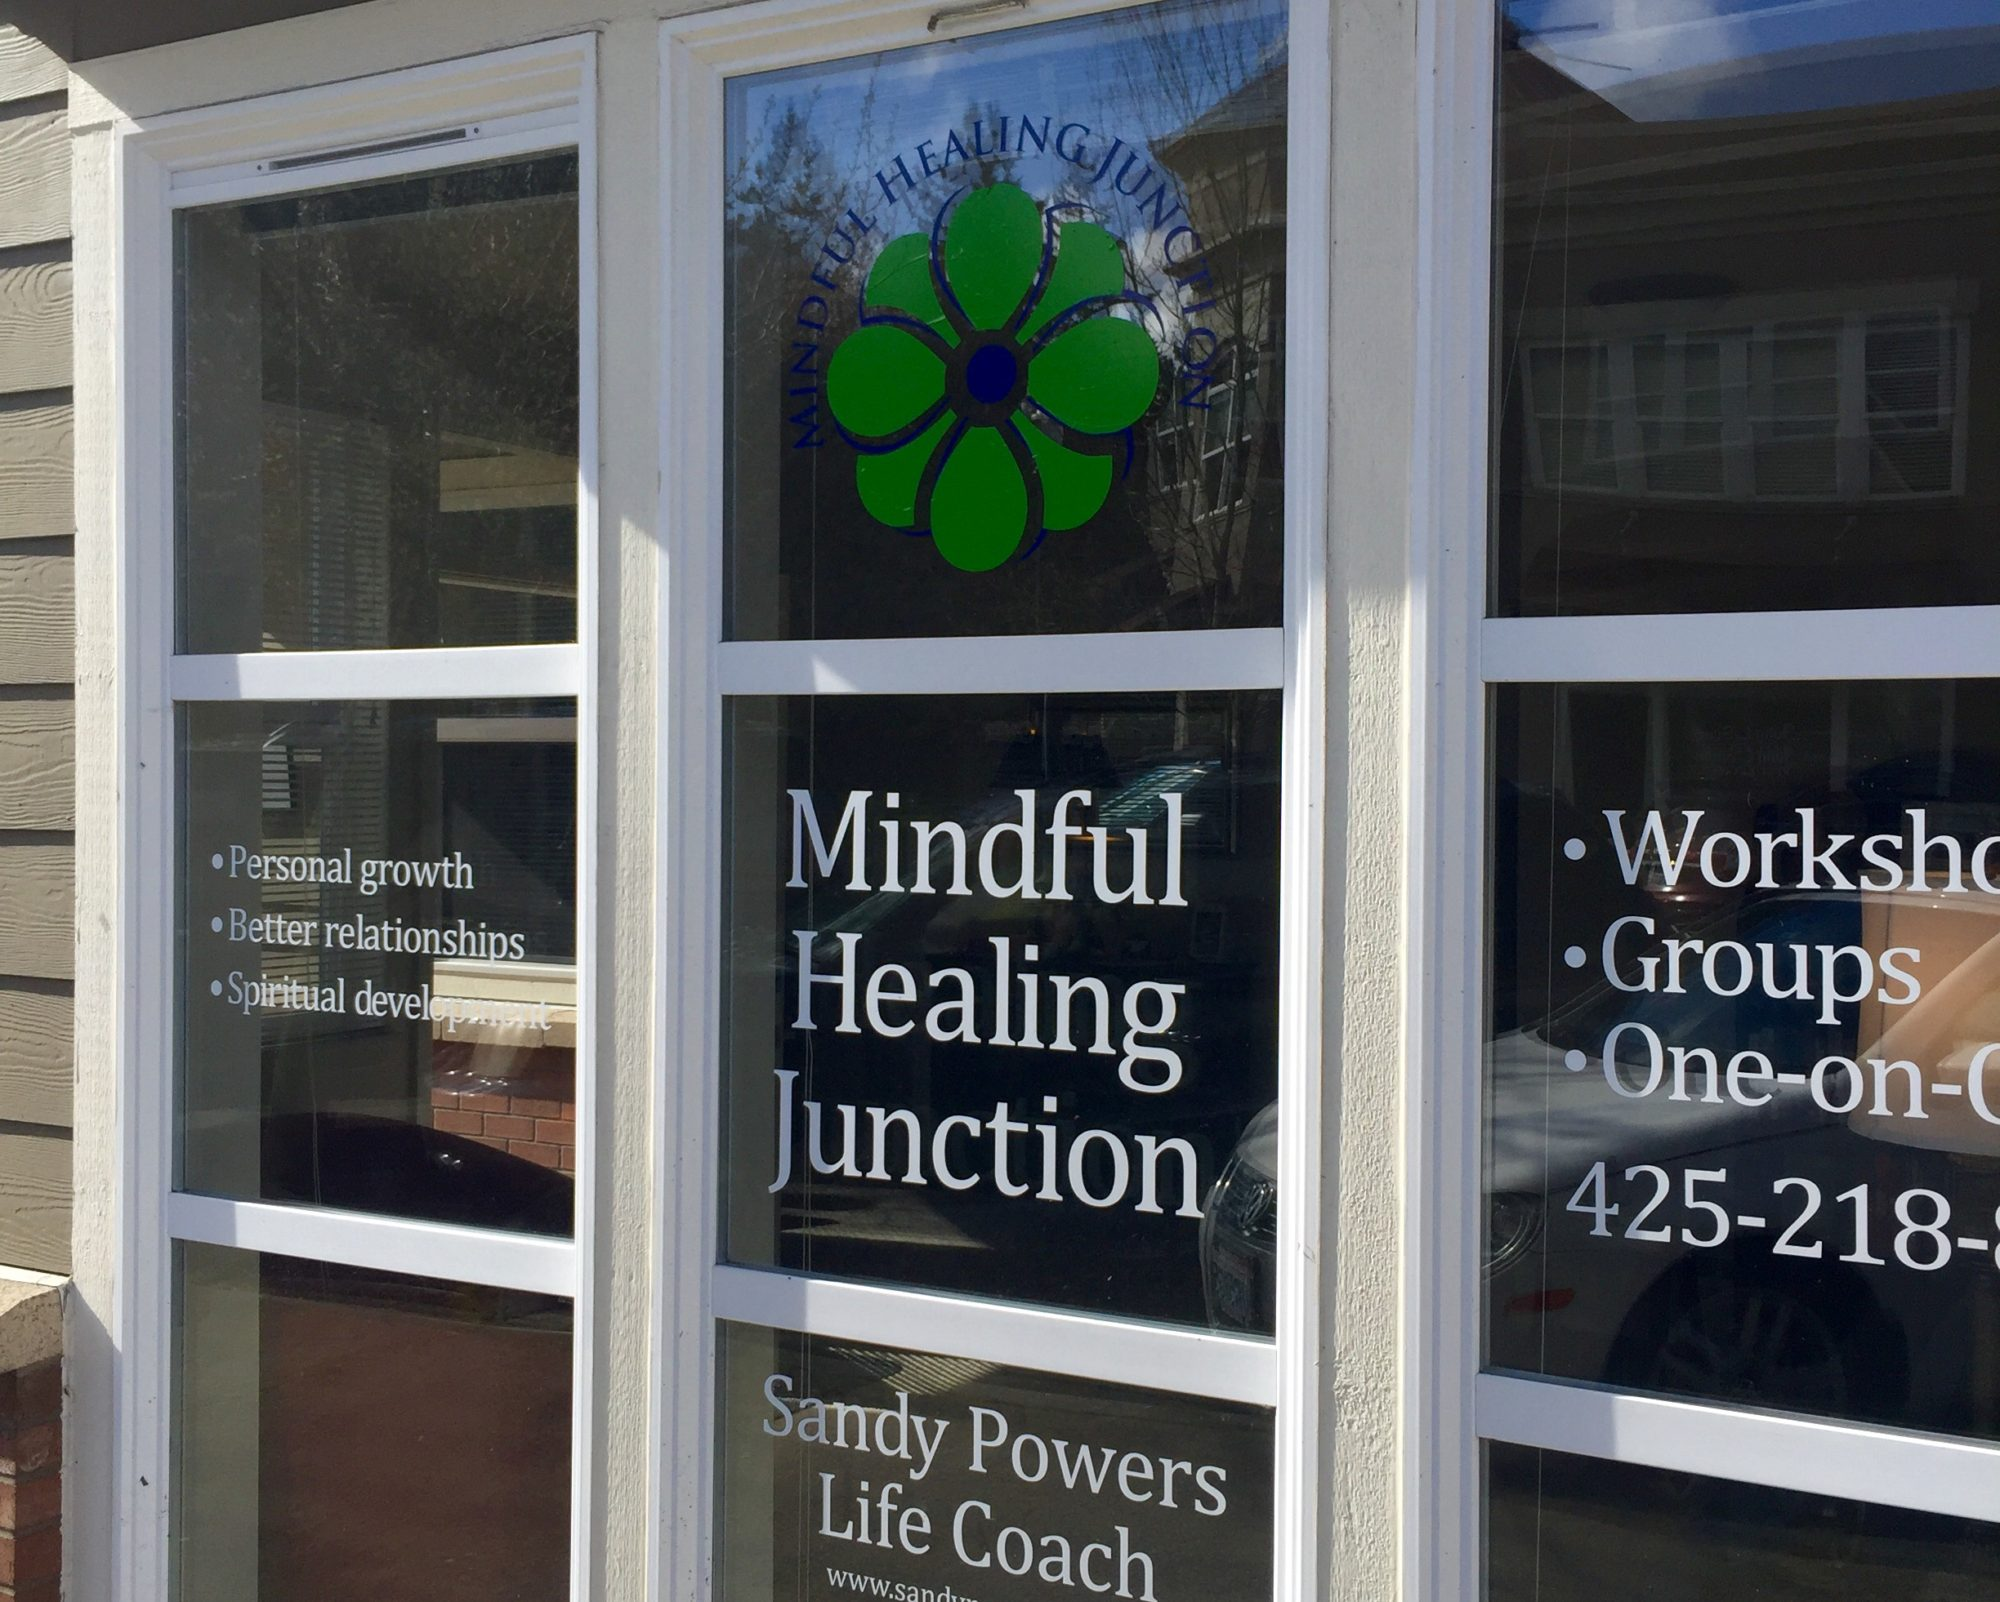 Mindful Healing Junction